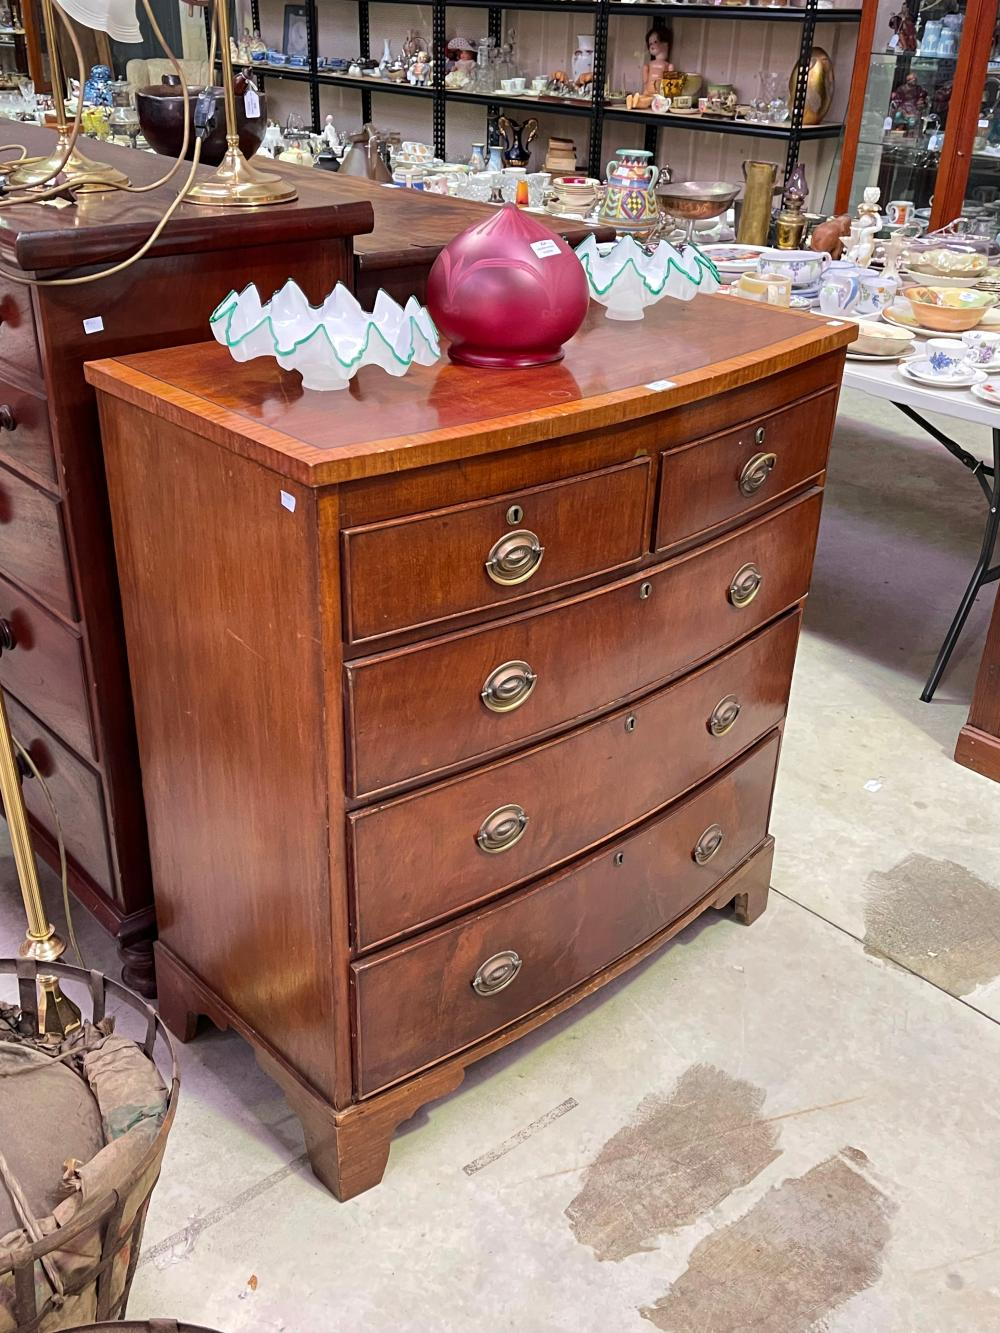 Antique late regency mahogany five drawer chest of bow front shape with brass handles, approx 106cm H x 96cm W x 52cm D